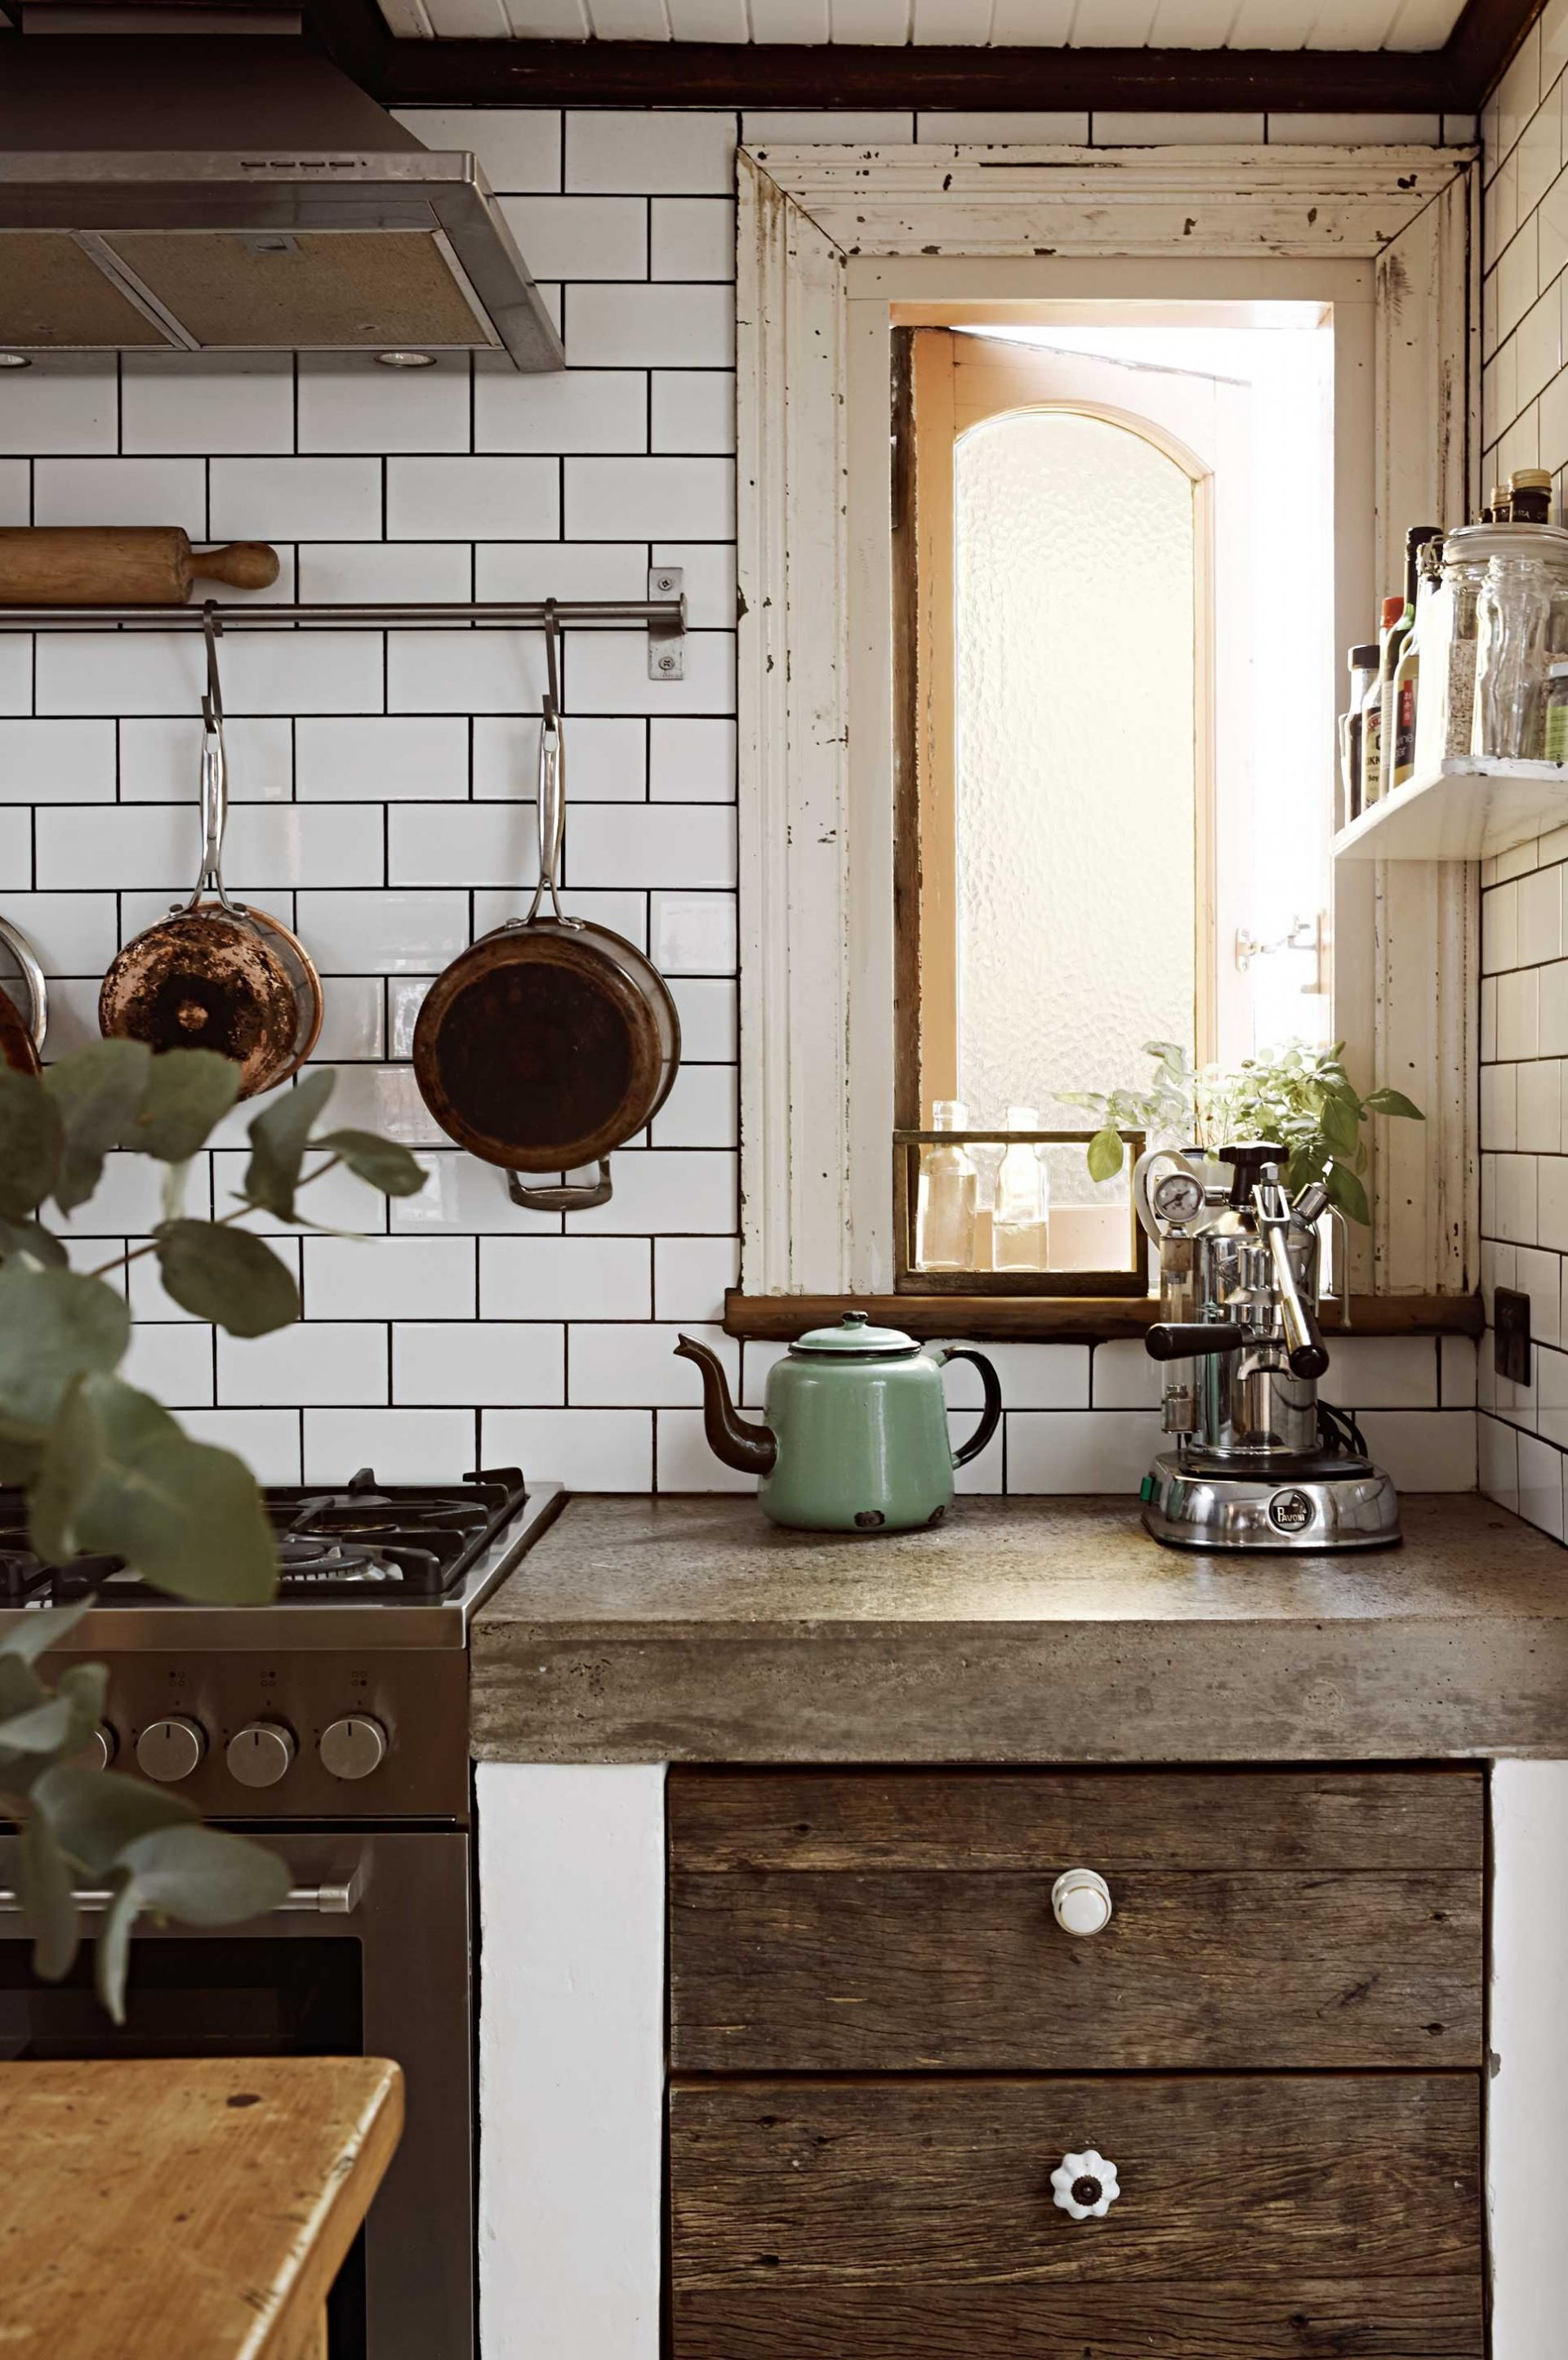 Rustic kitchen ideas from insideout.com.au. Styling by Nicole ...